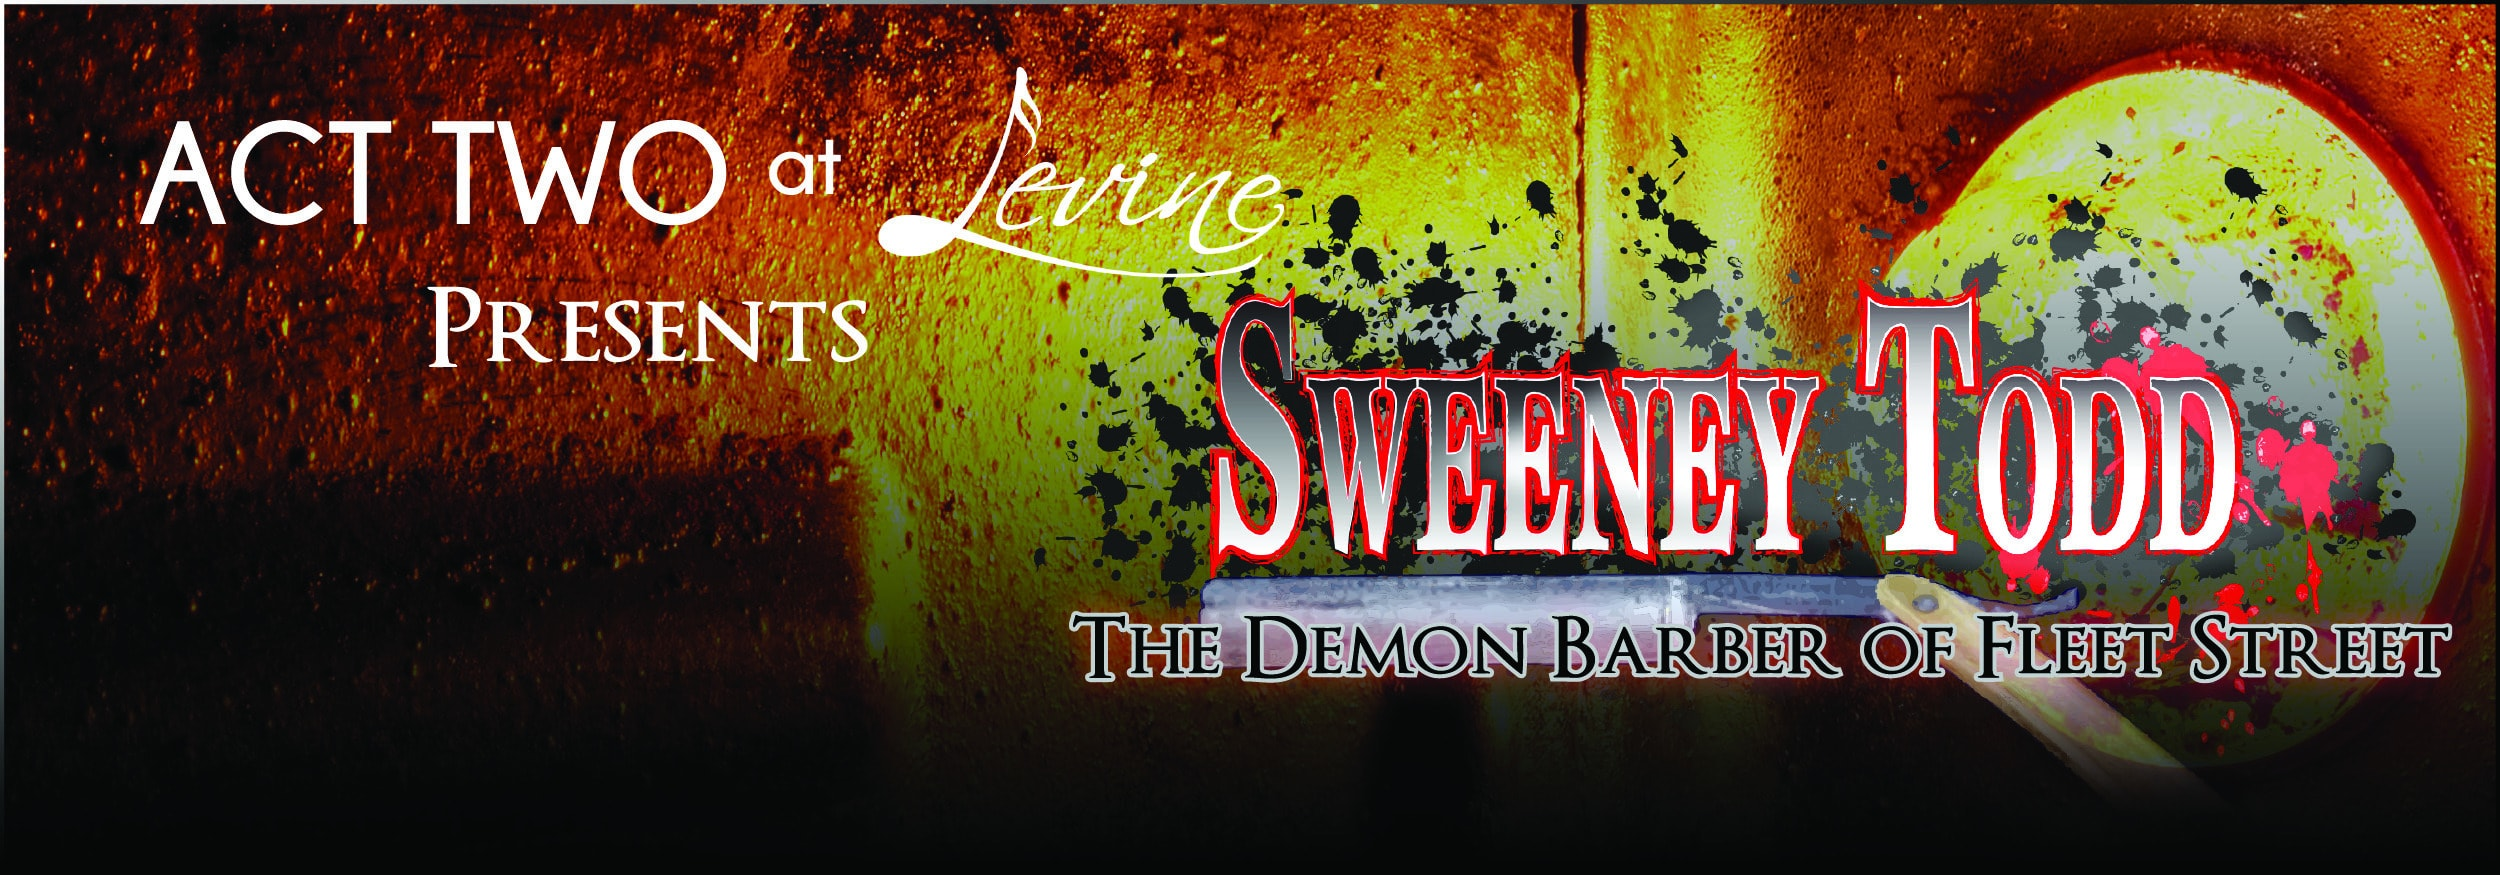 sweeney todd email